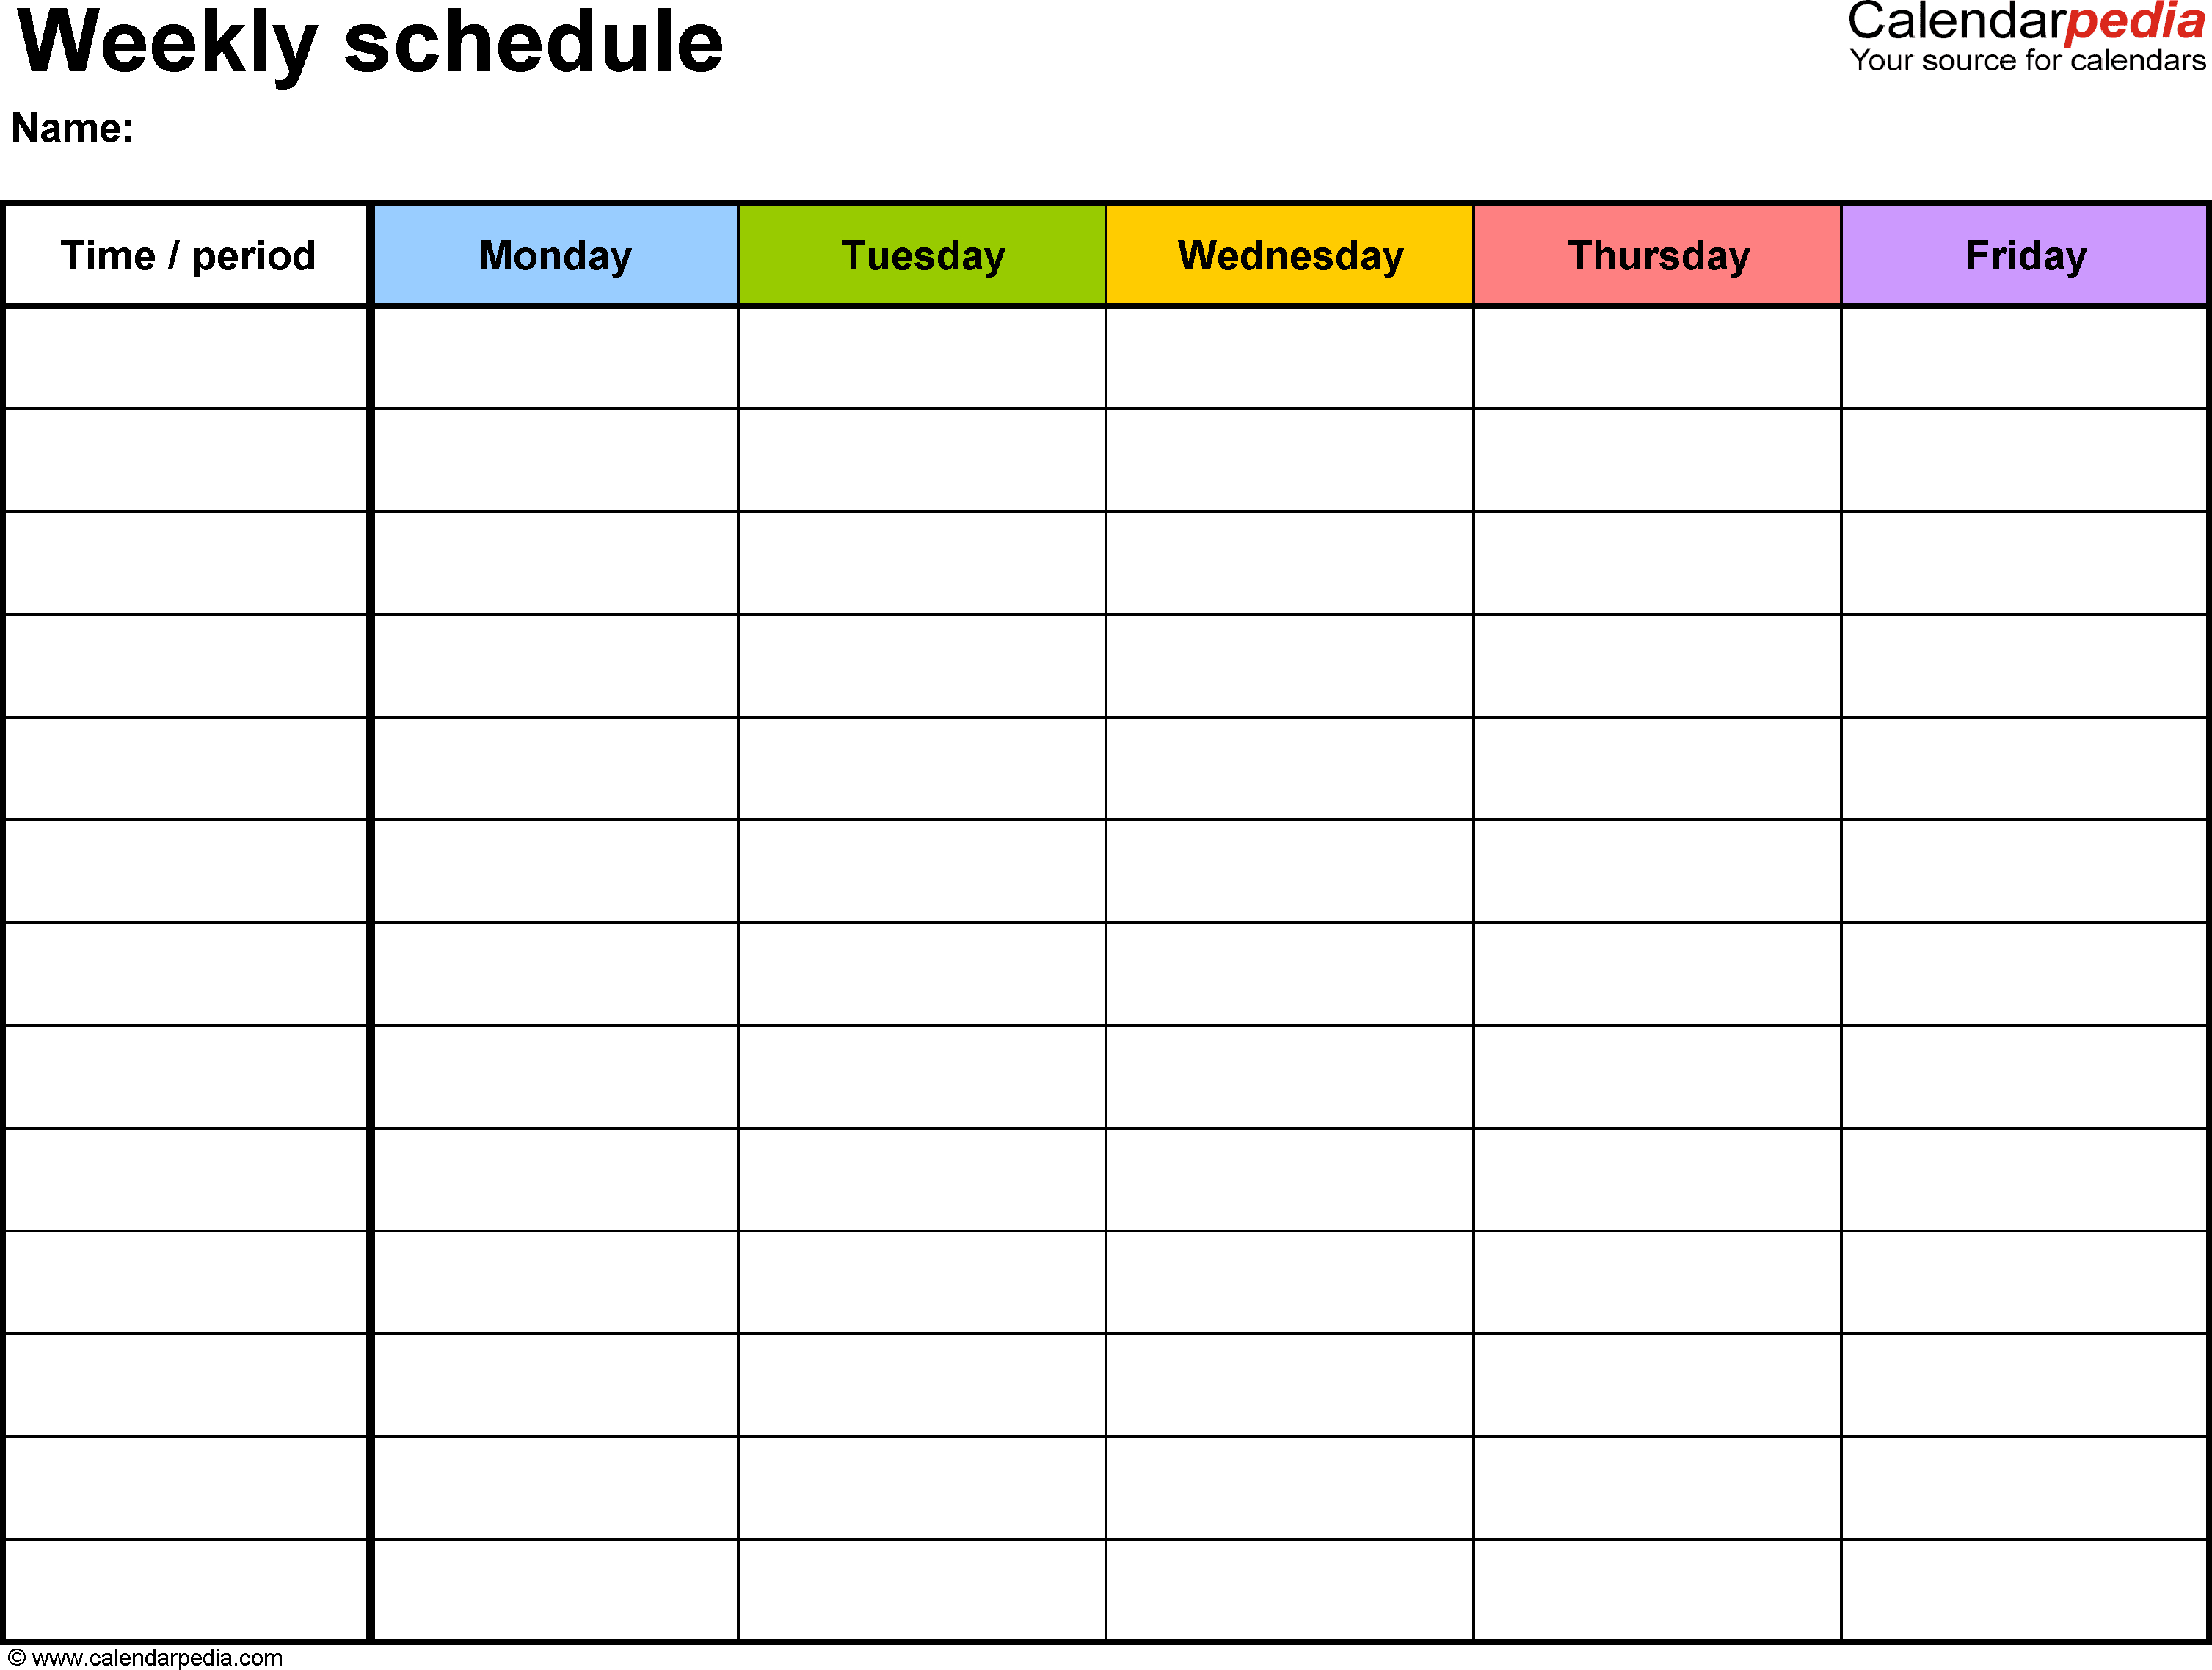 Free Weekly Schedule Templates For Word 18 Templates Throughout Editable Weekly Calendar Template